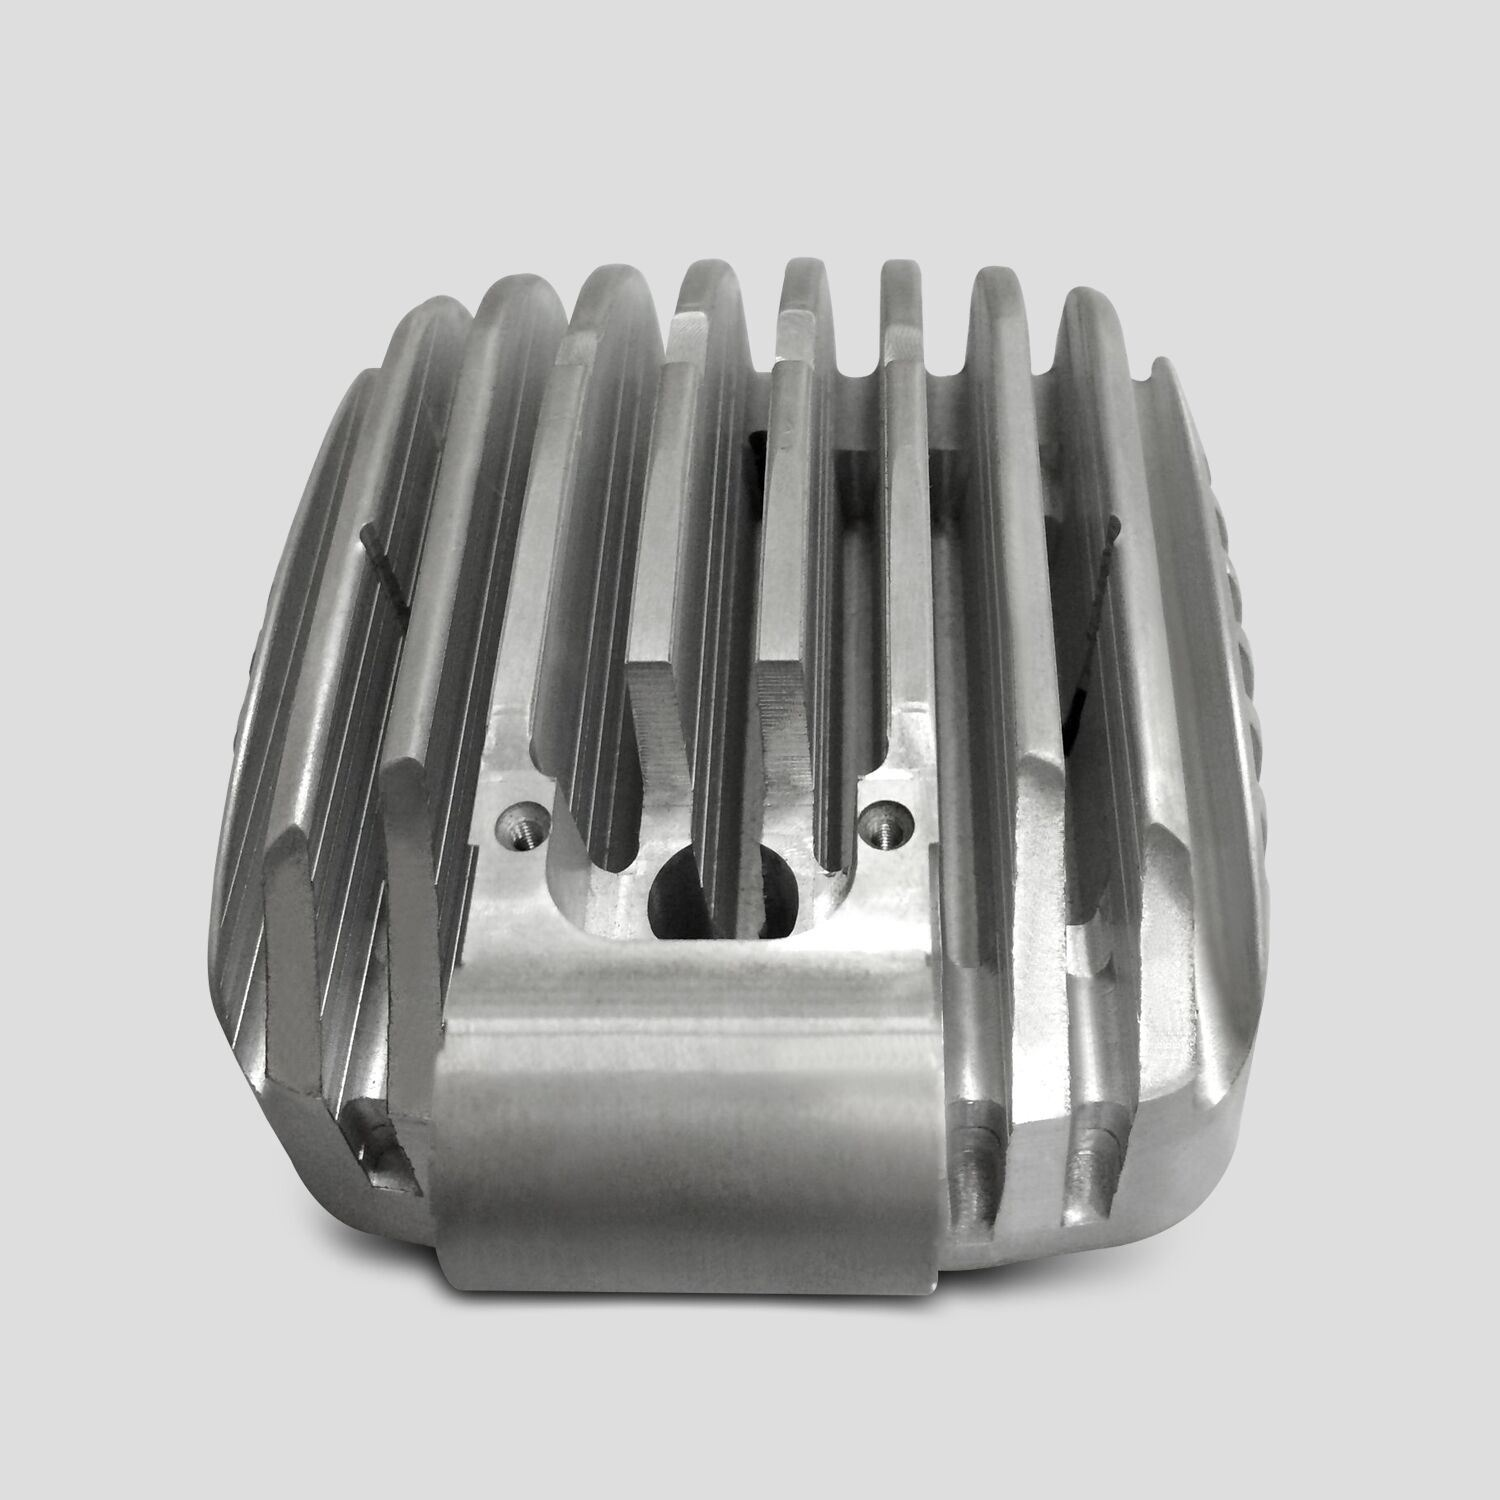 CNC Machined Hardware Spare Parts for Autometic Mechanic